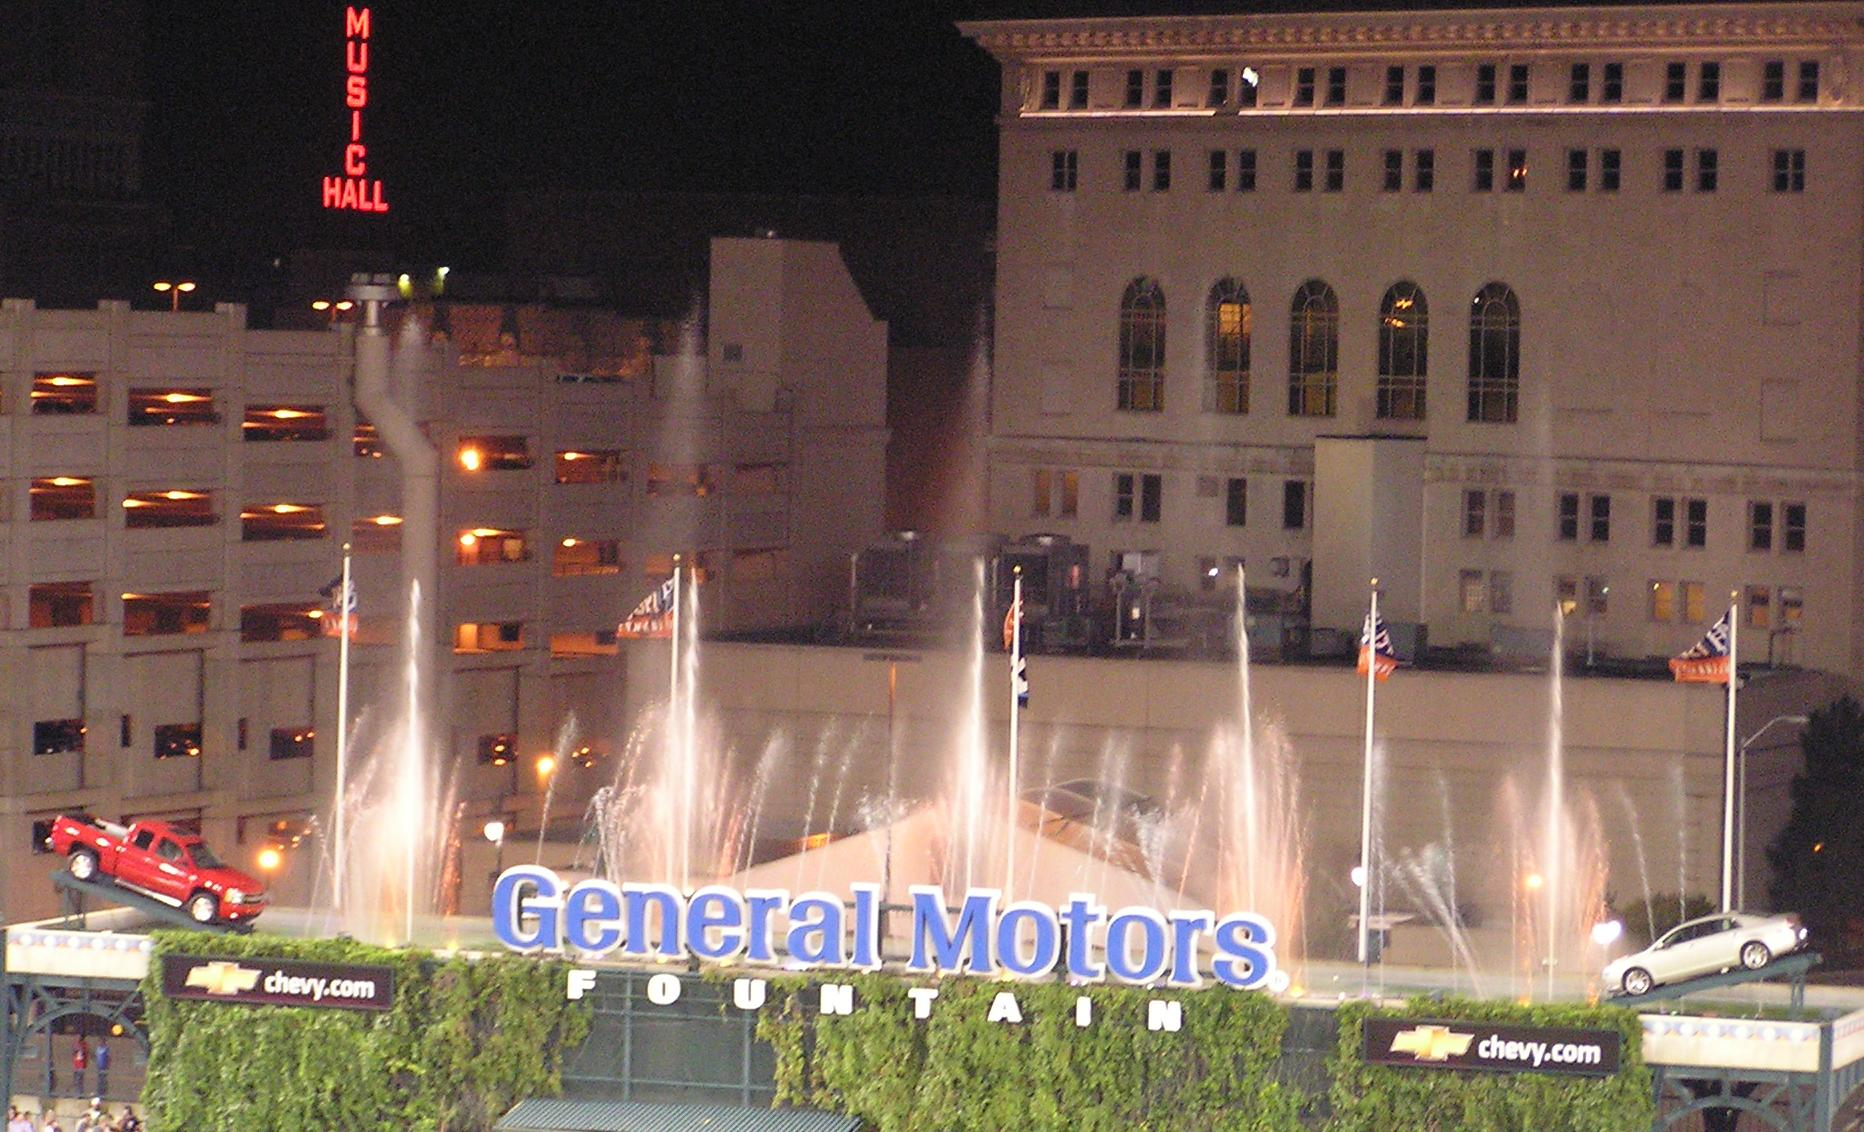 The General Motors Fountains - Comerica Park